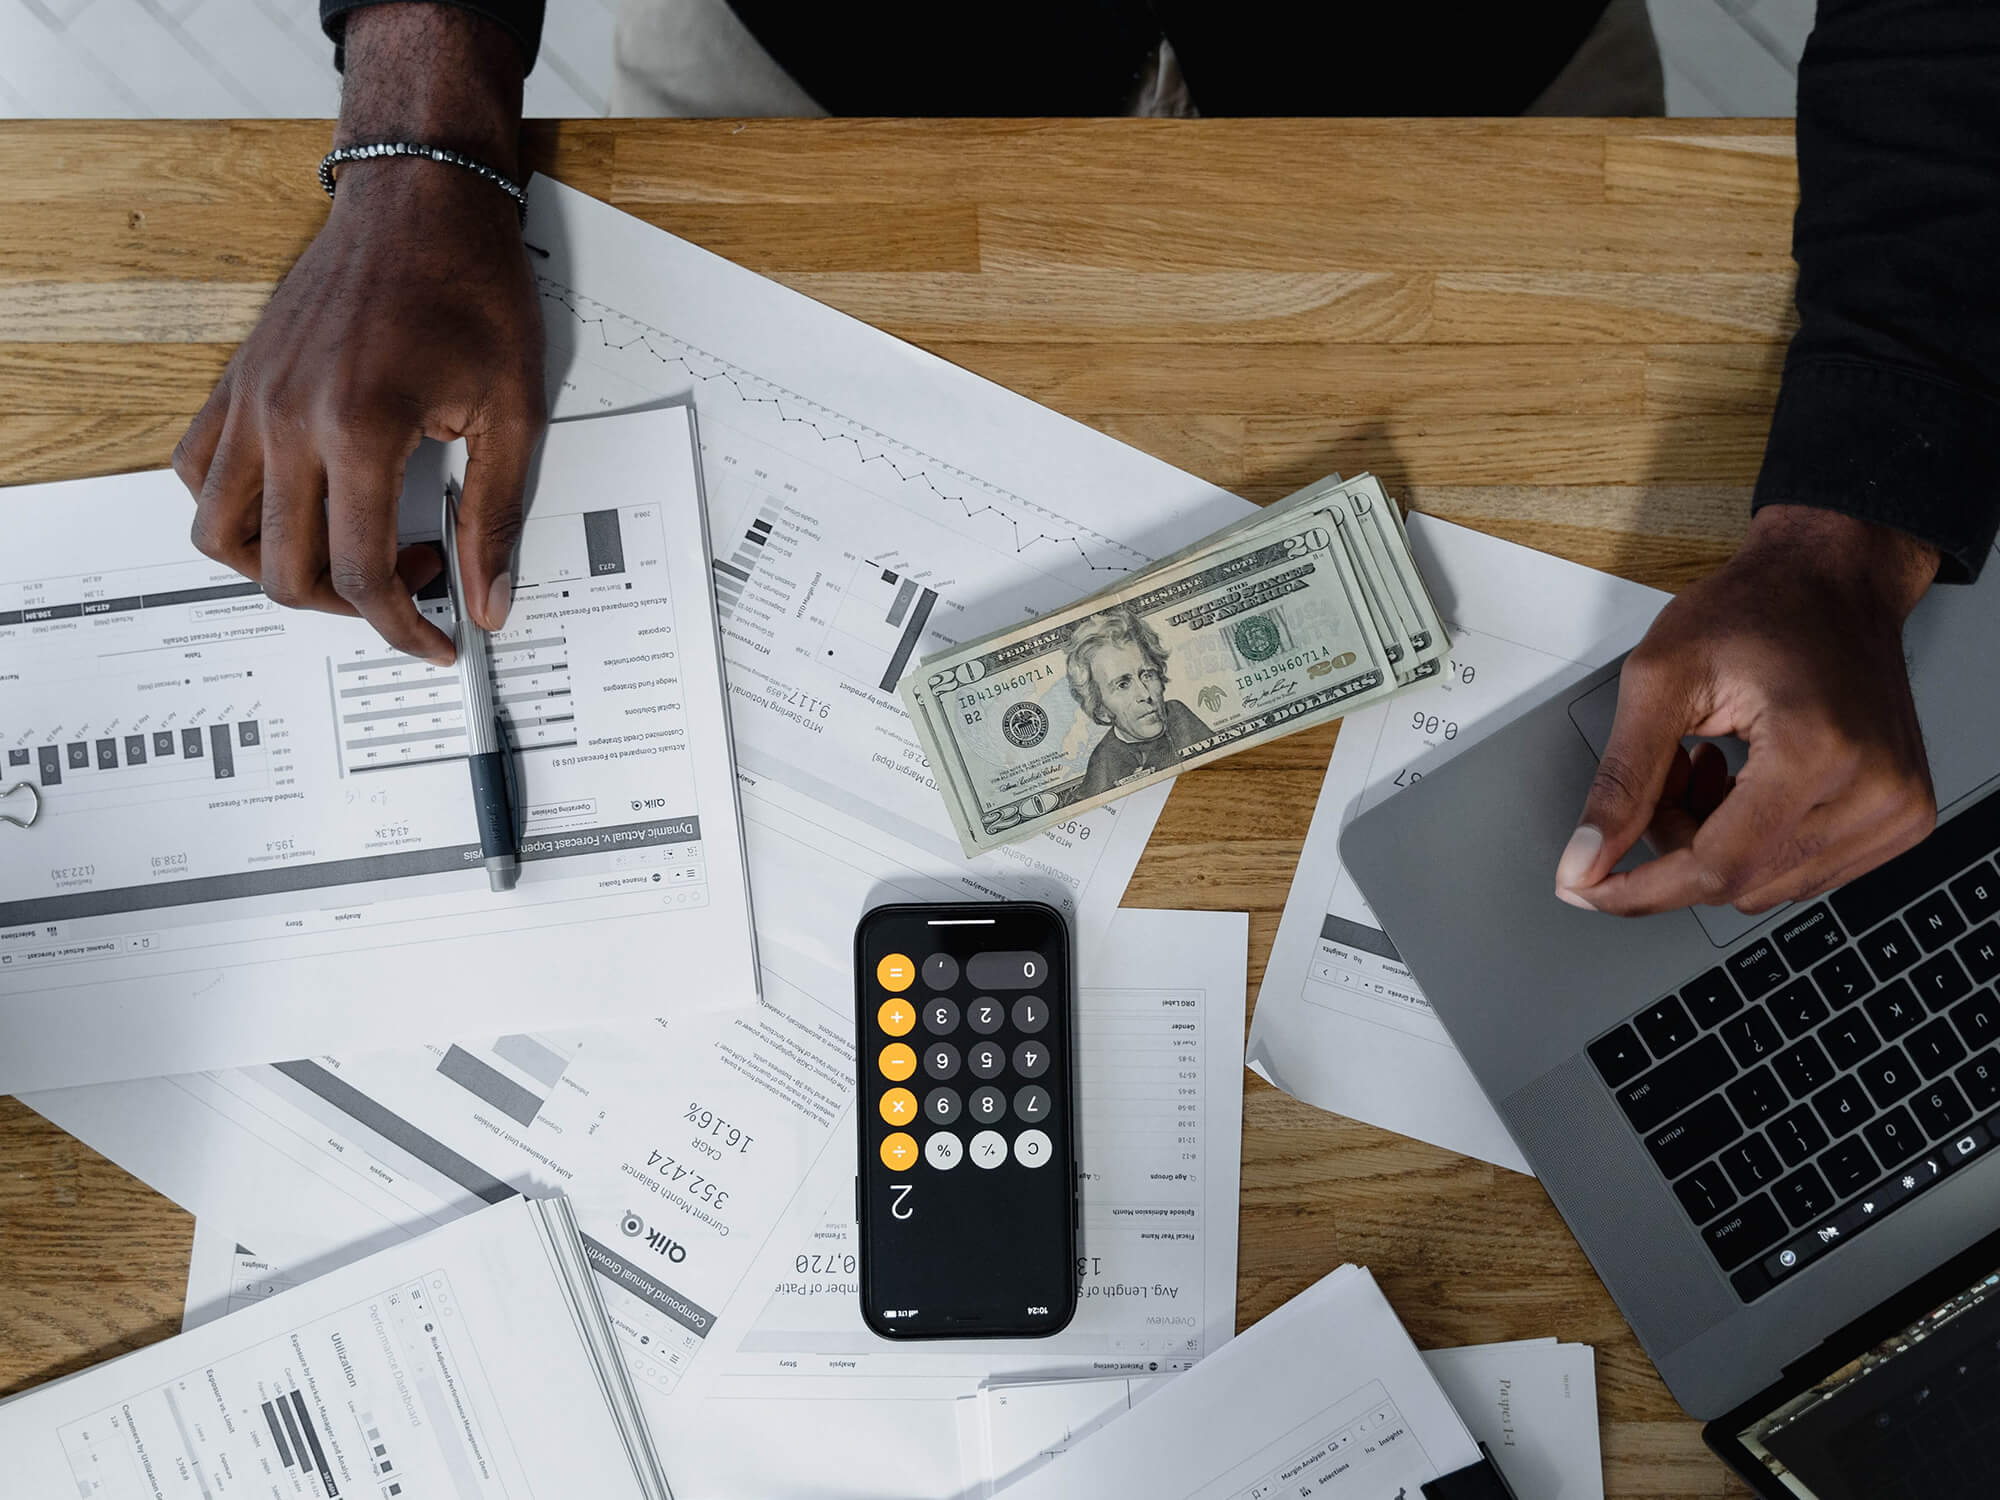 Paperwork, a calculator and money placed on a wooden table with a laptop